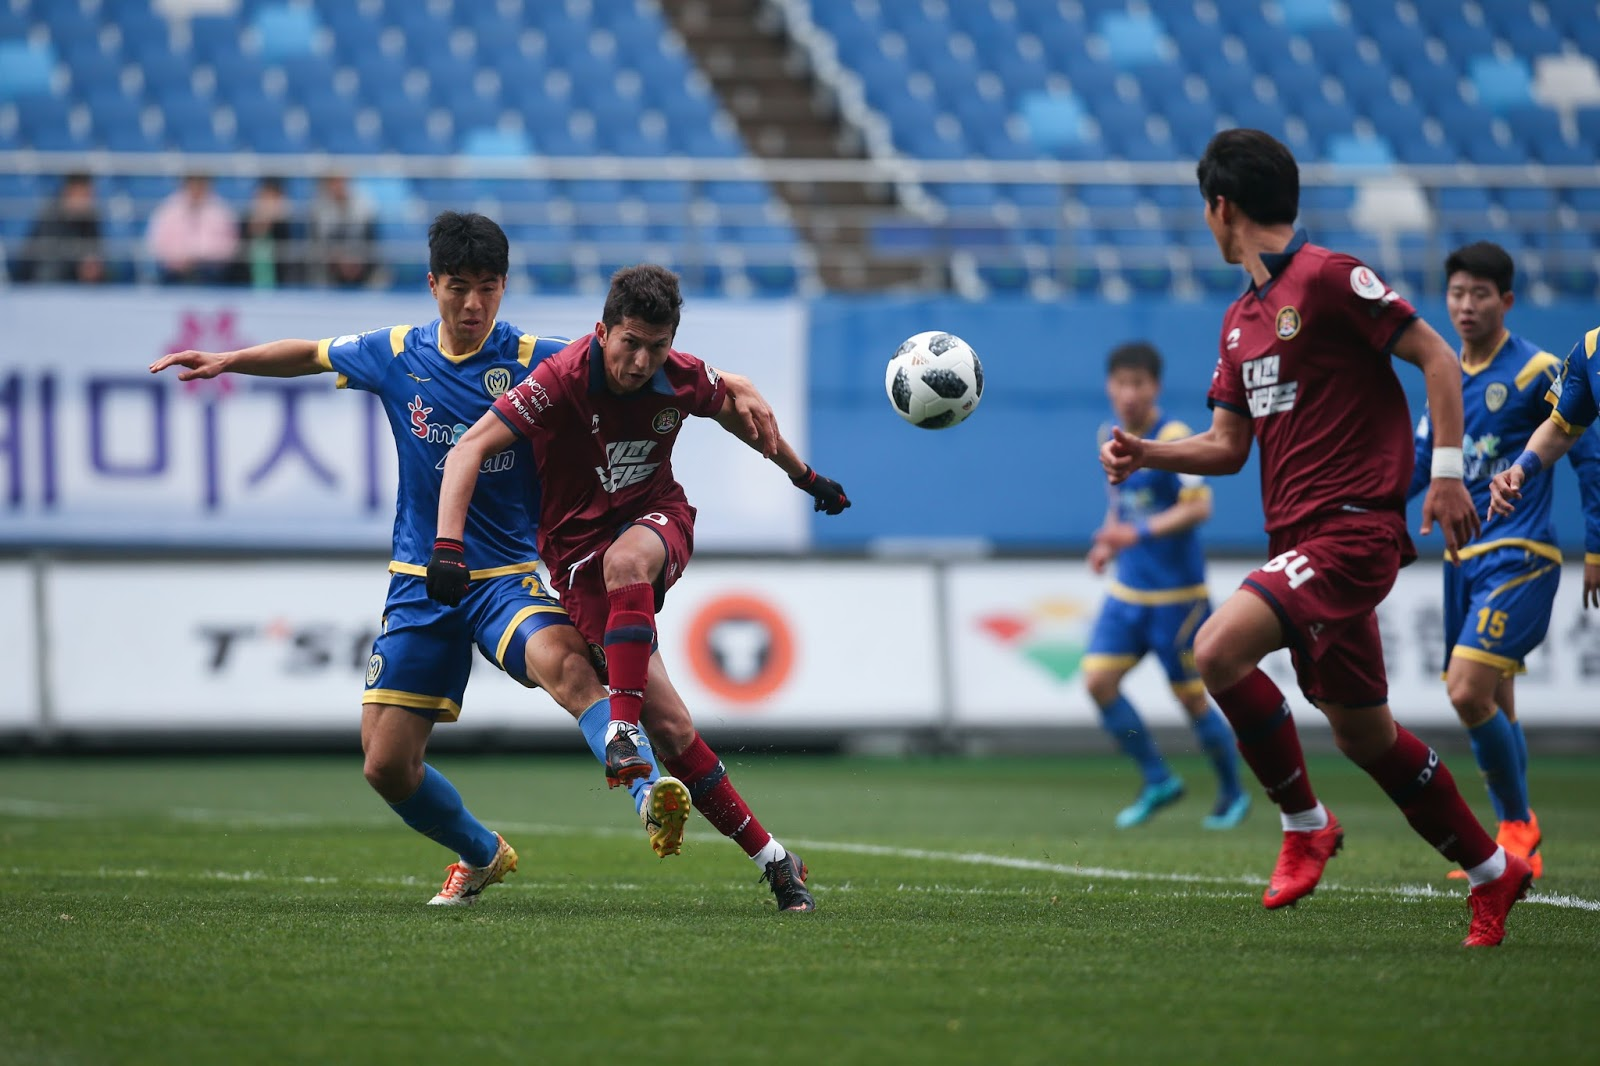 Preview: Daejeon Citizen vs Seongnam FC in K League 2